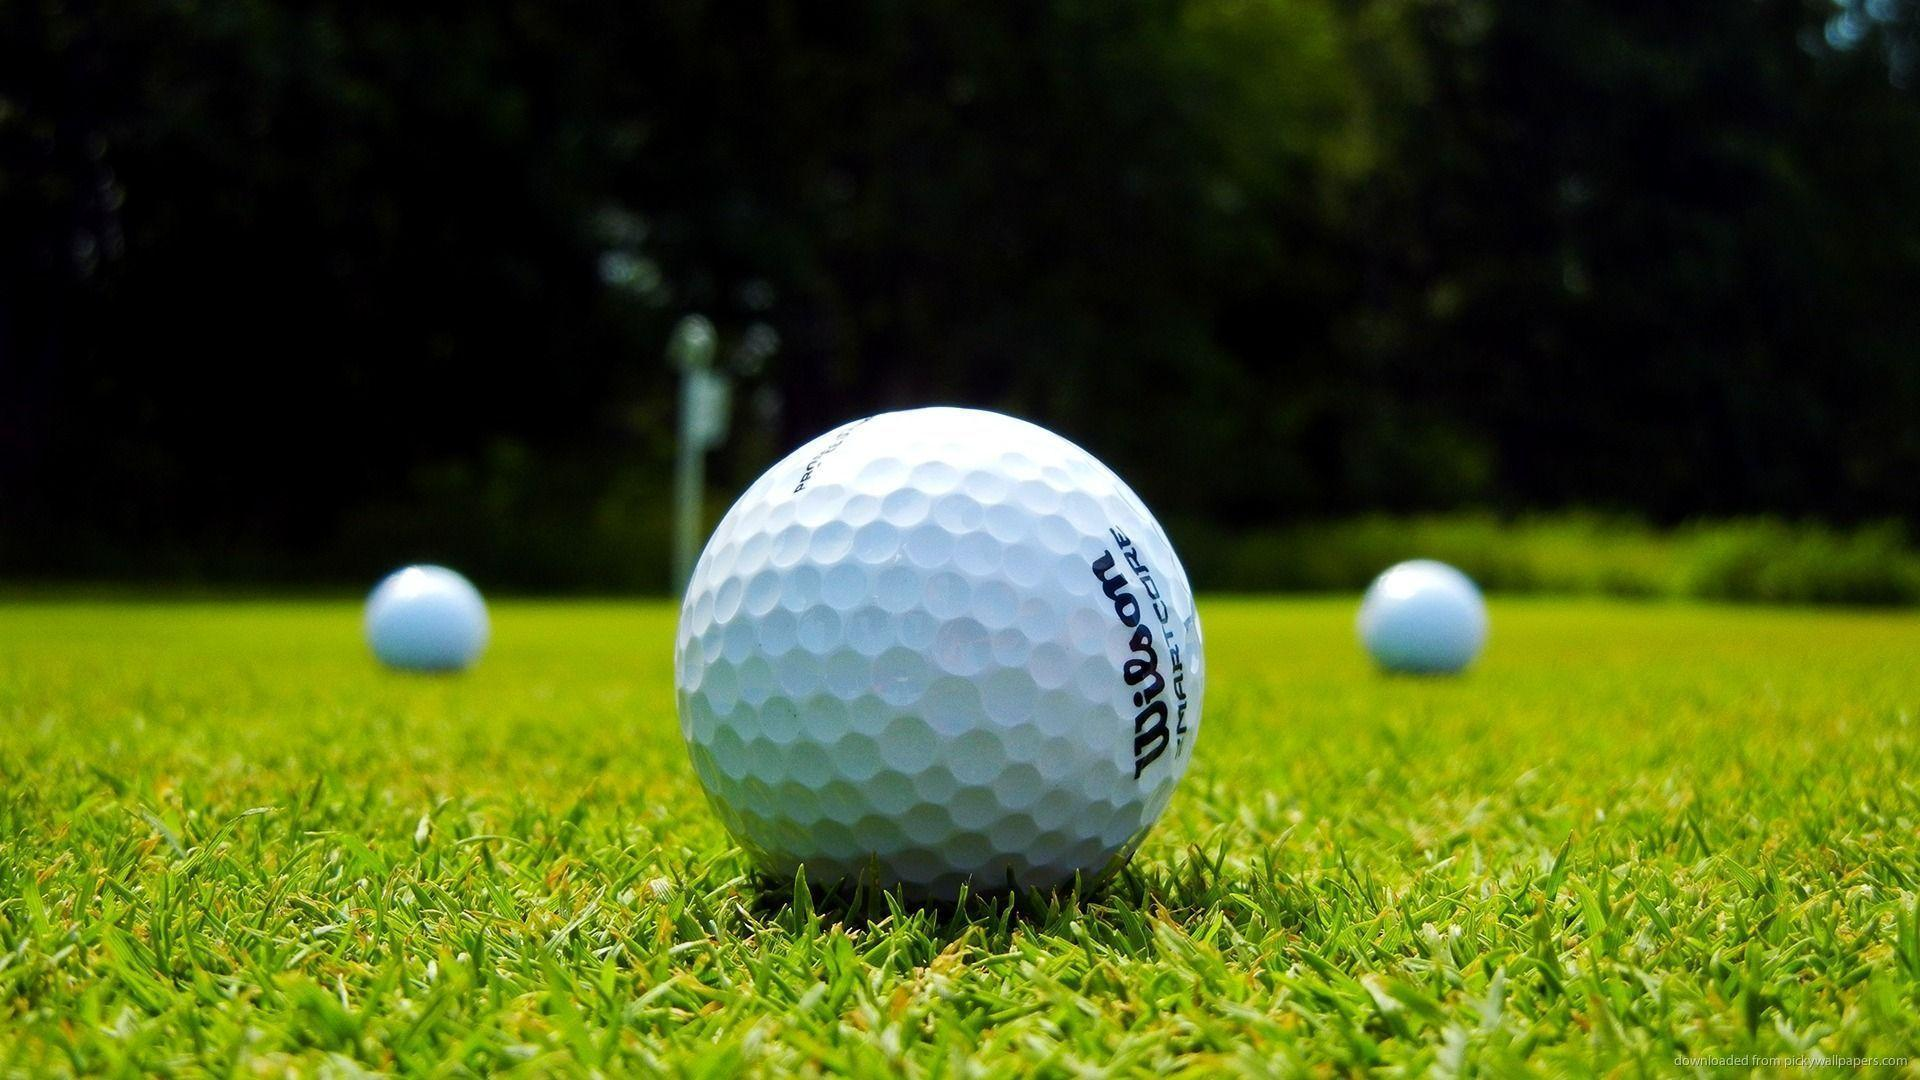 Three Wilson Golf Balls Wallpapers For Blackberry Curve